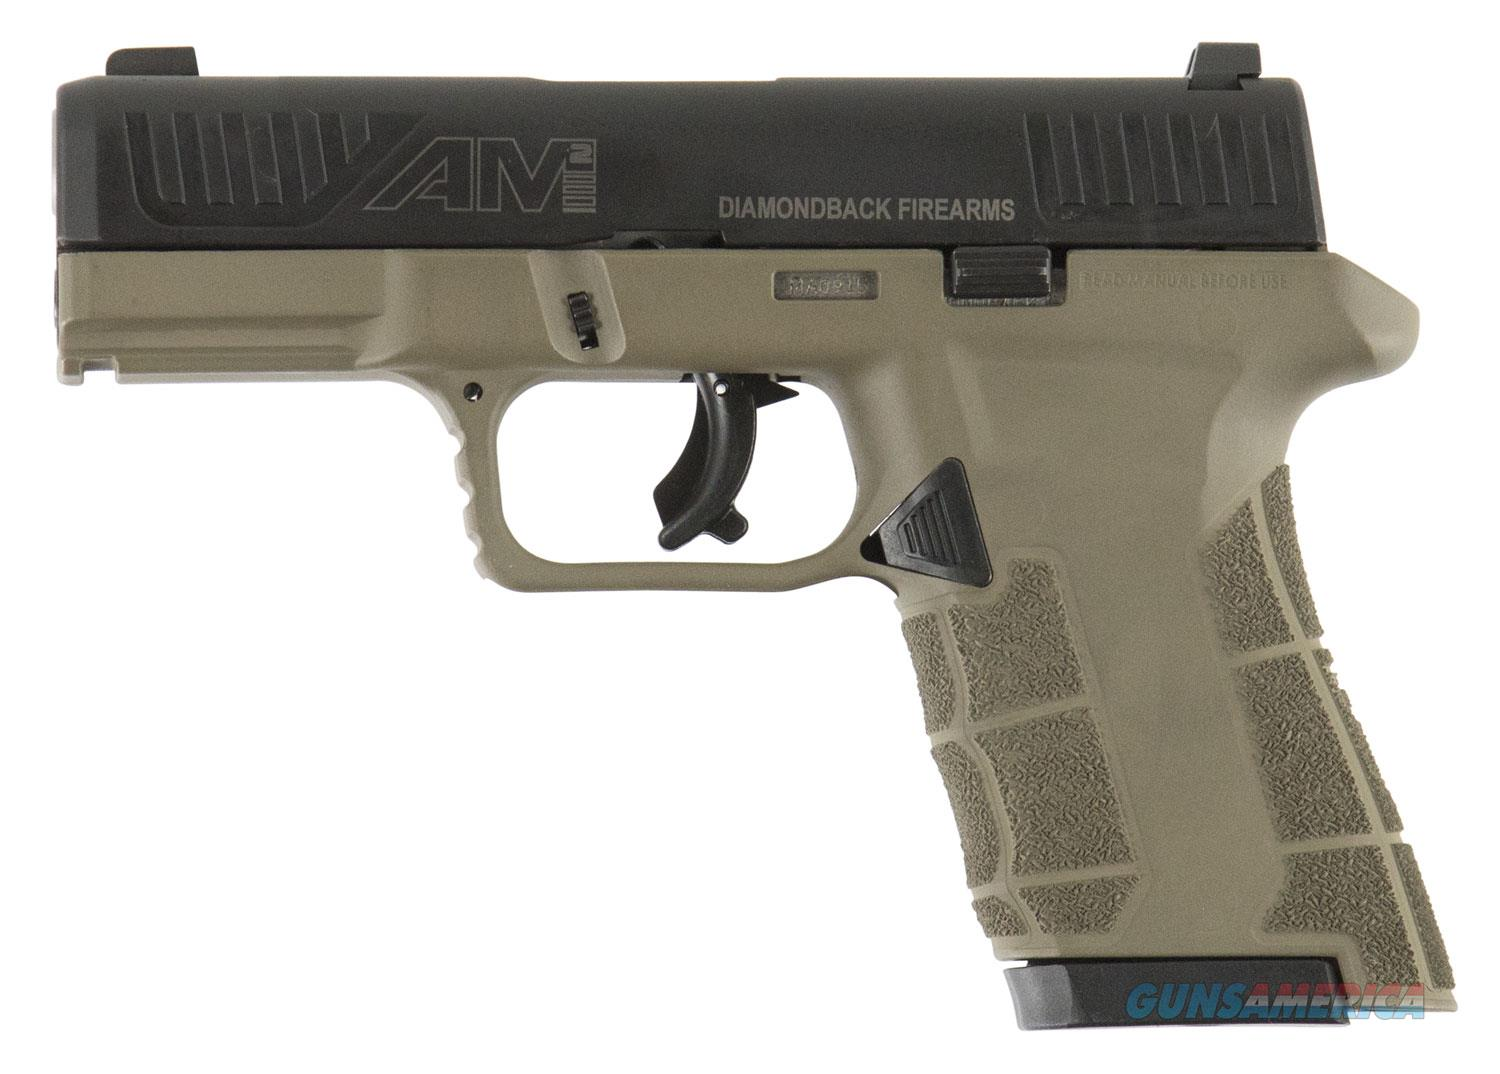 "Diamondback DBAM29FDE 9mm compact 17+1/12+1 Mags *WHAT A DEAL* ""NO CREDIT CARD FEE""  Guns > Pistols > Diamondback Pistols"